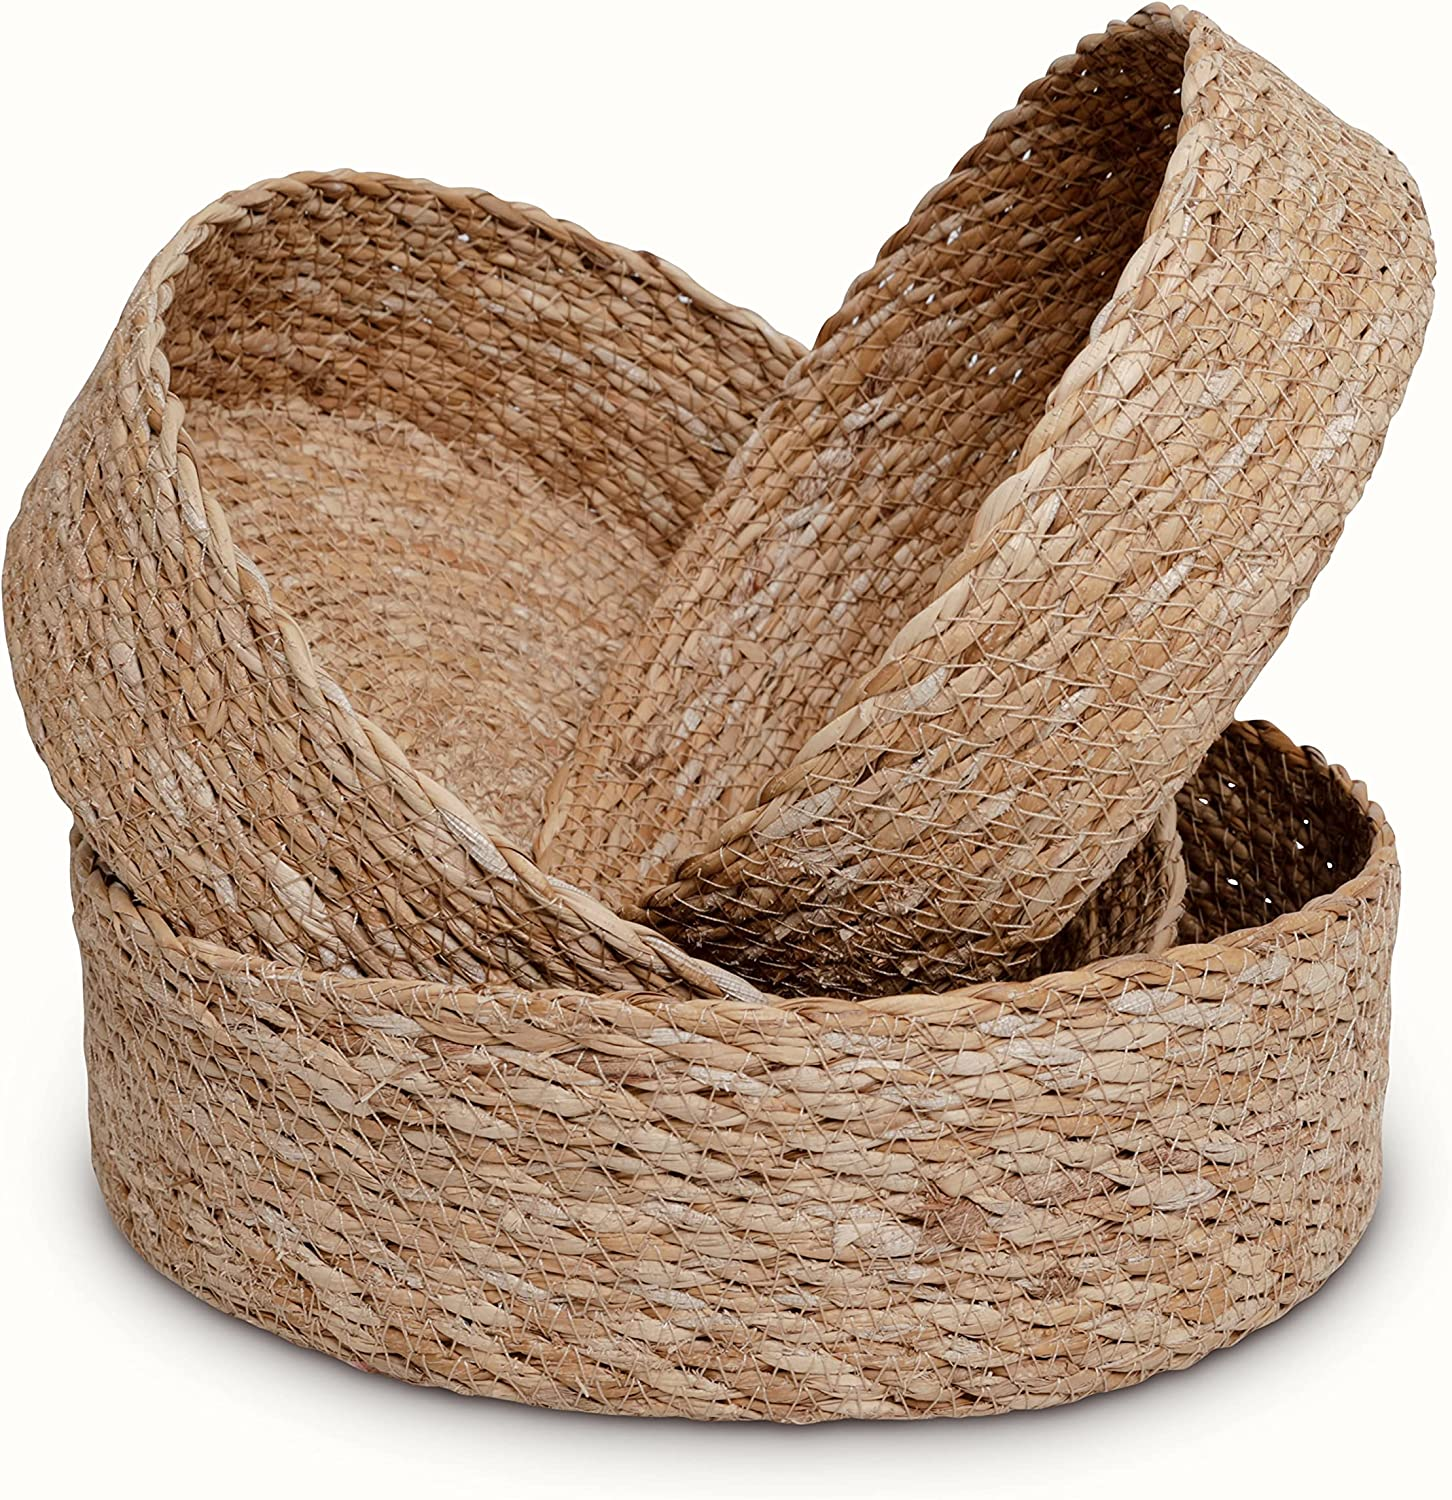 Woven Round Seagrass Basket Tray Set for Home - 3 Decorative Storage Baskets for Organizing and Storage – Sustainable, Eco-Friendly Nesting Baskets with Cotton Dust Bag for Coastal and Beach Decor (8